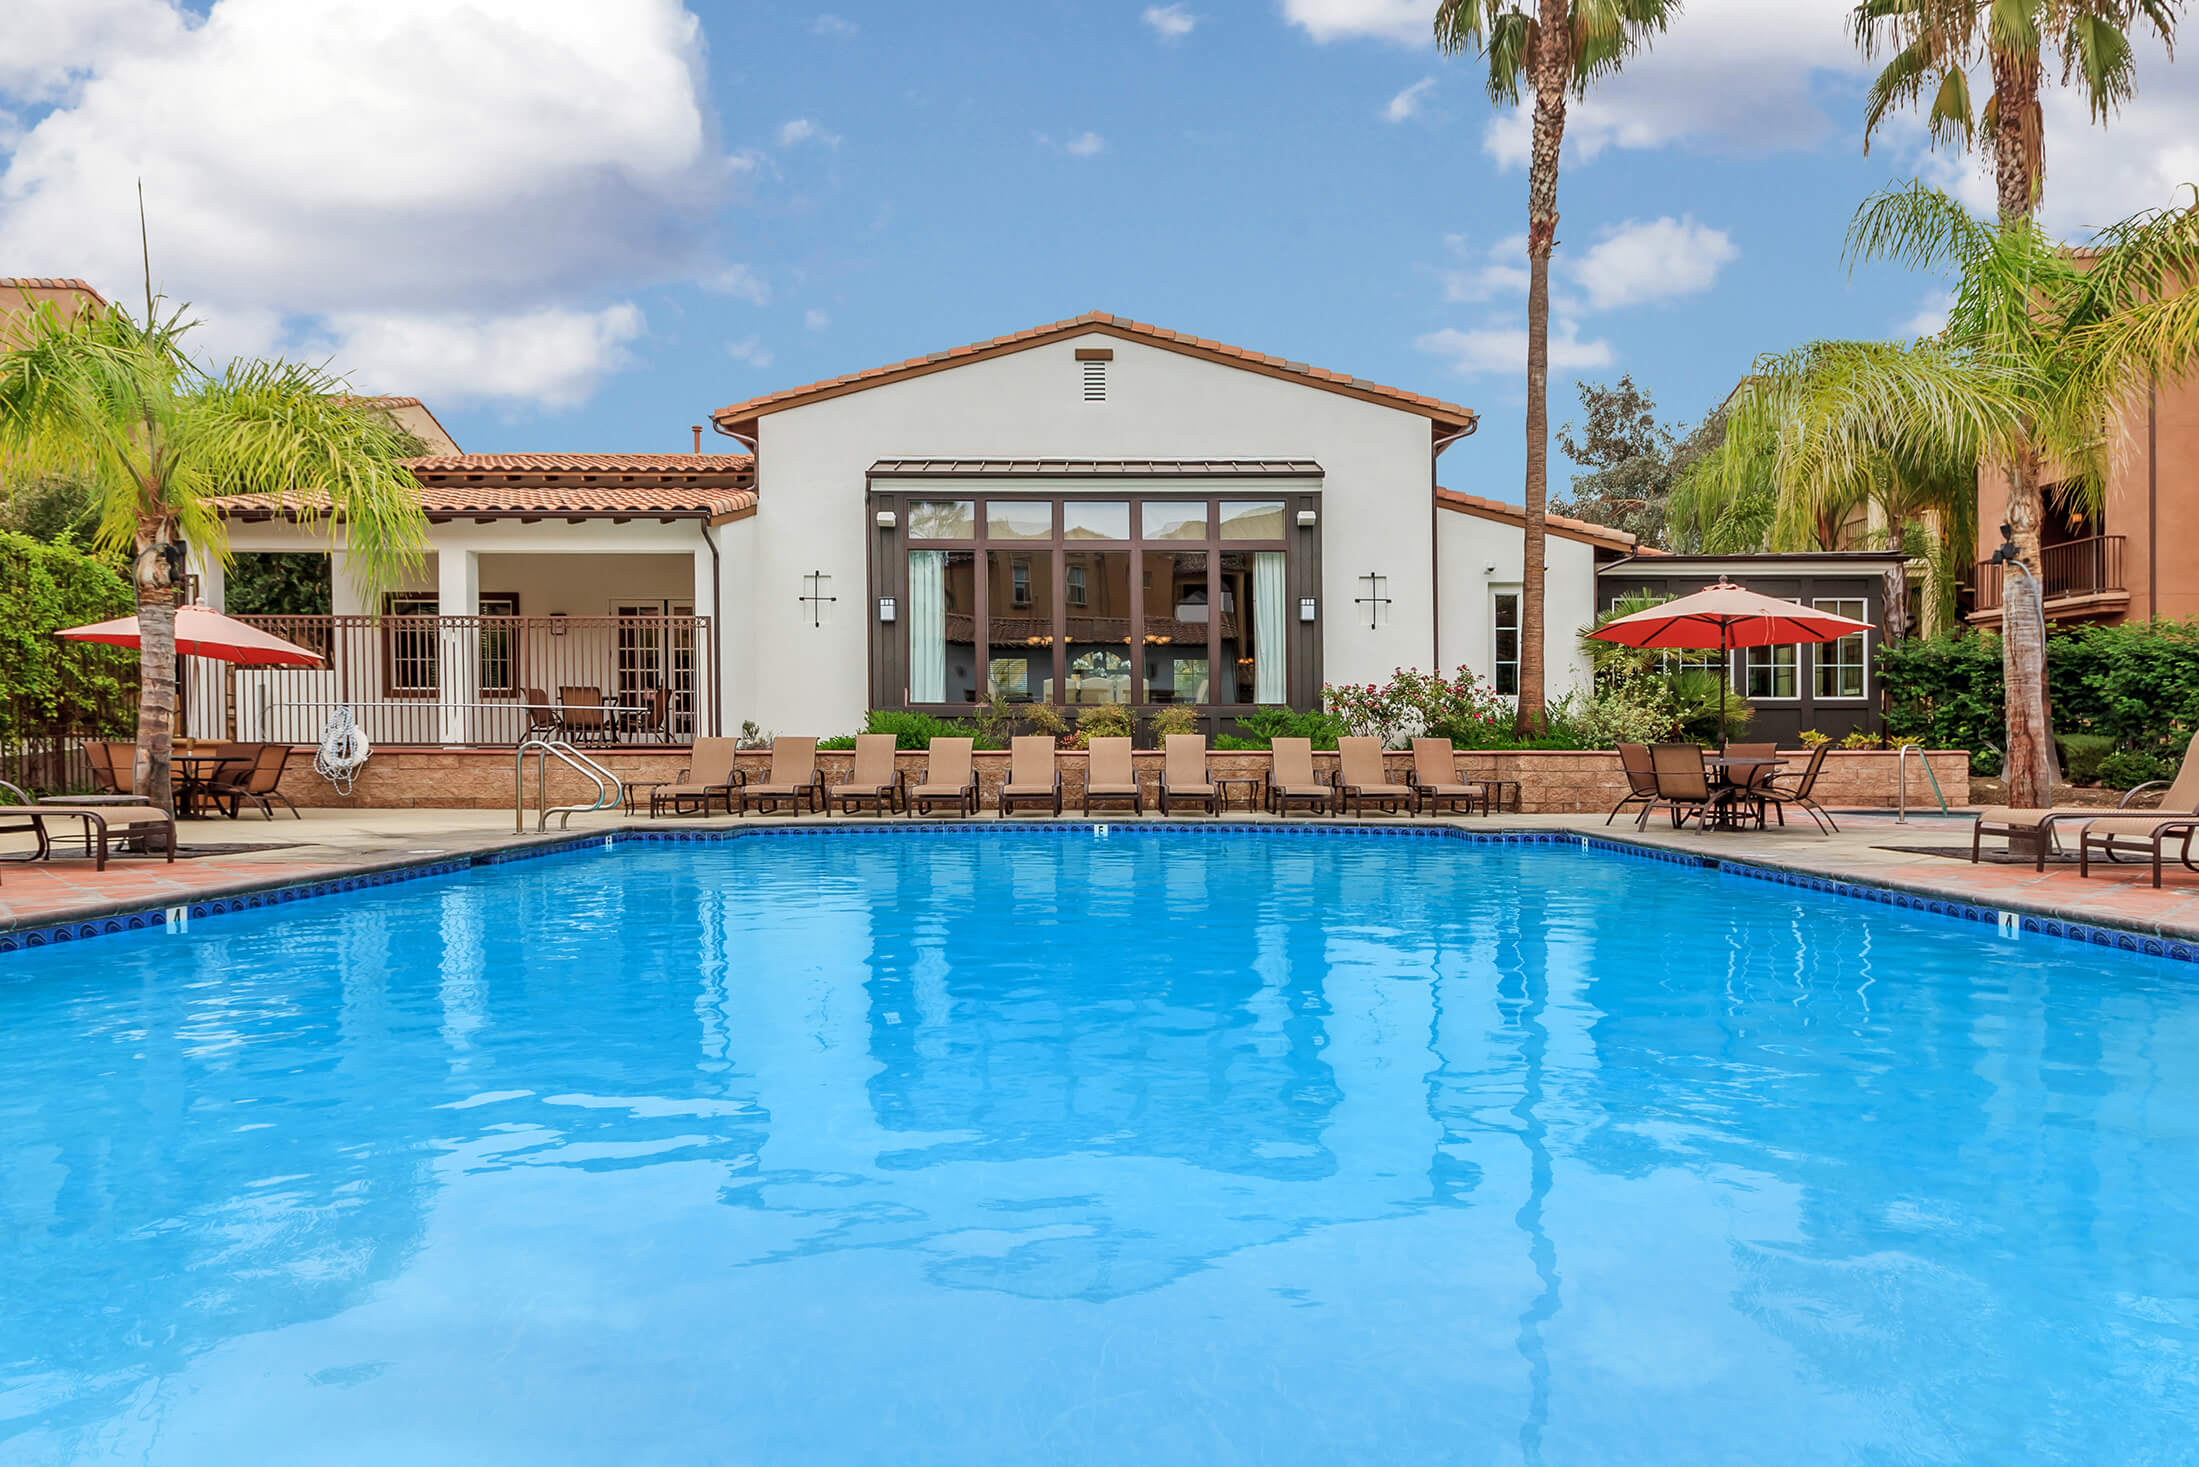 College Park Apartment Homes Apartments in Upland CA